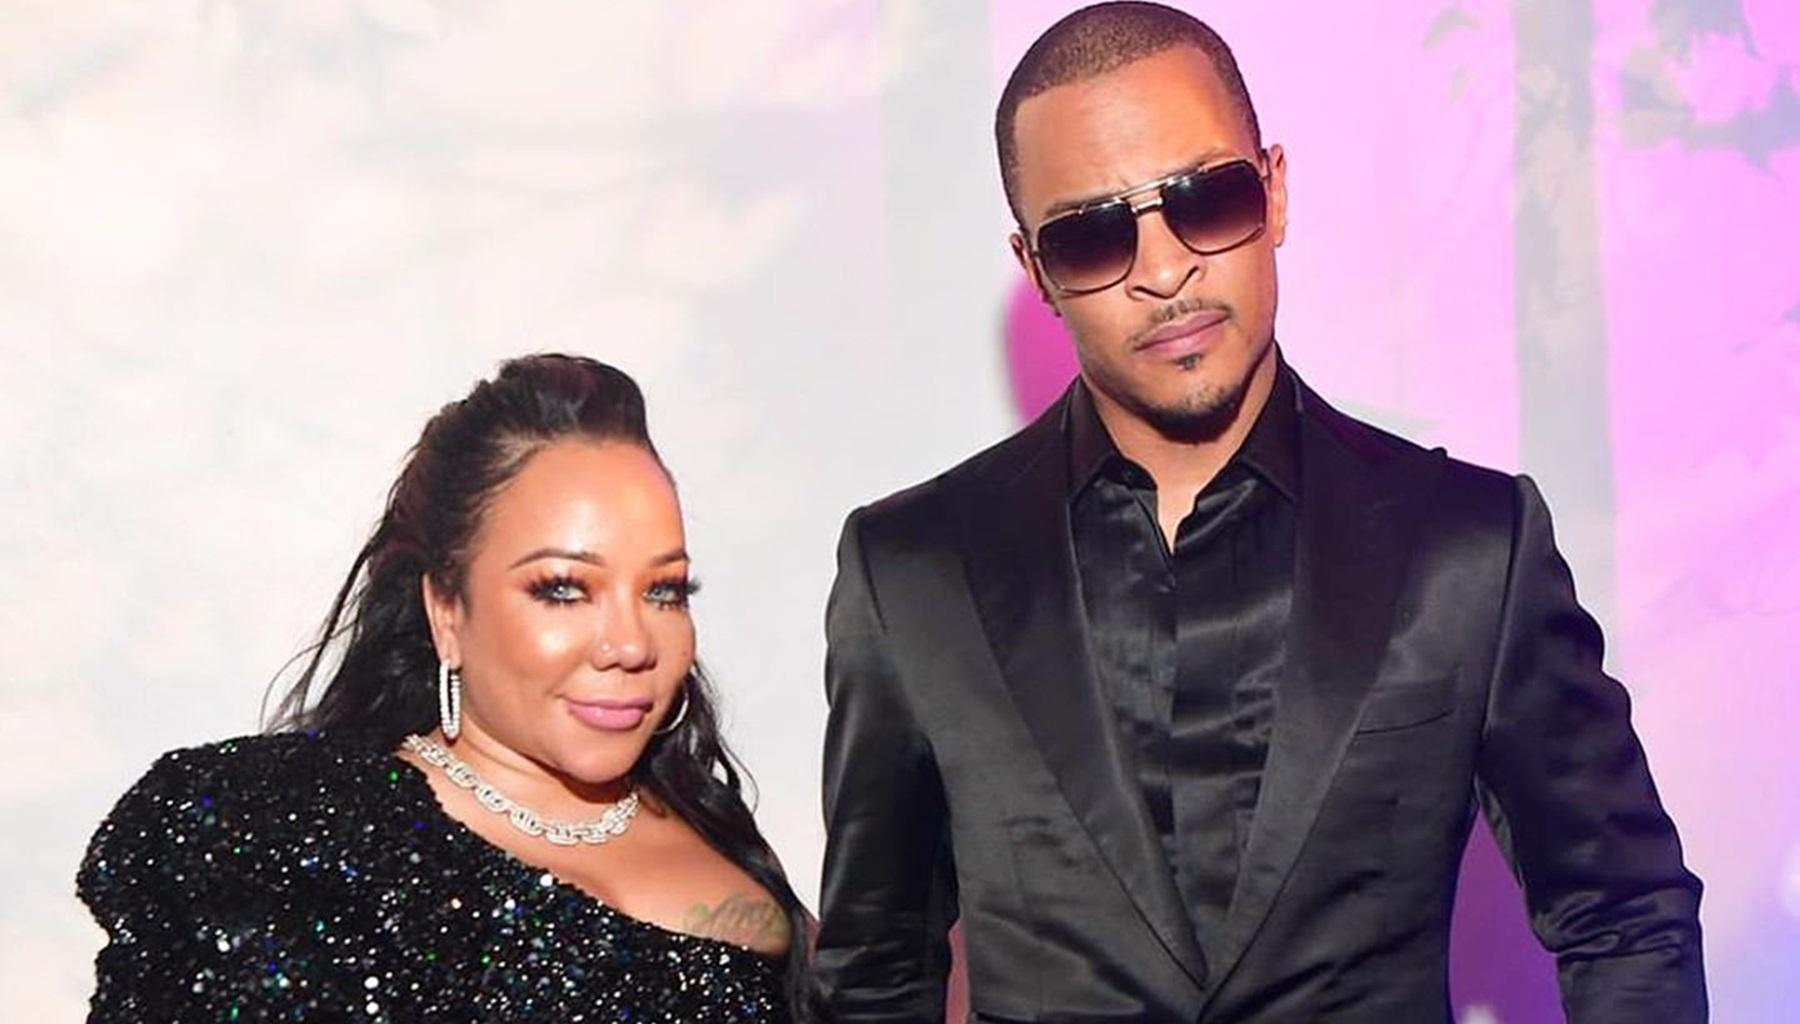 Tiny Harris Gushes Over Her Husband, T.I.: 'Imperfect Love Story'